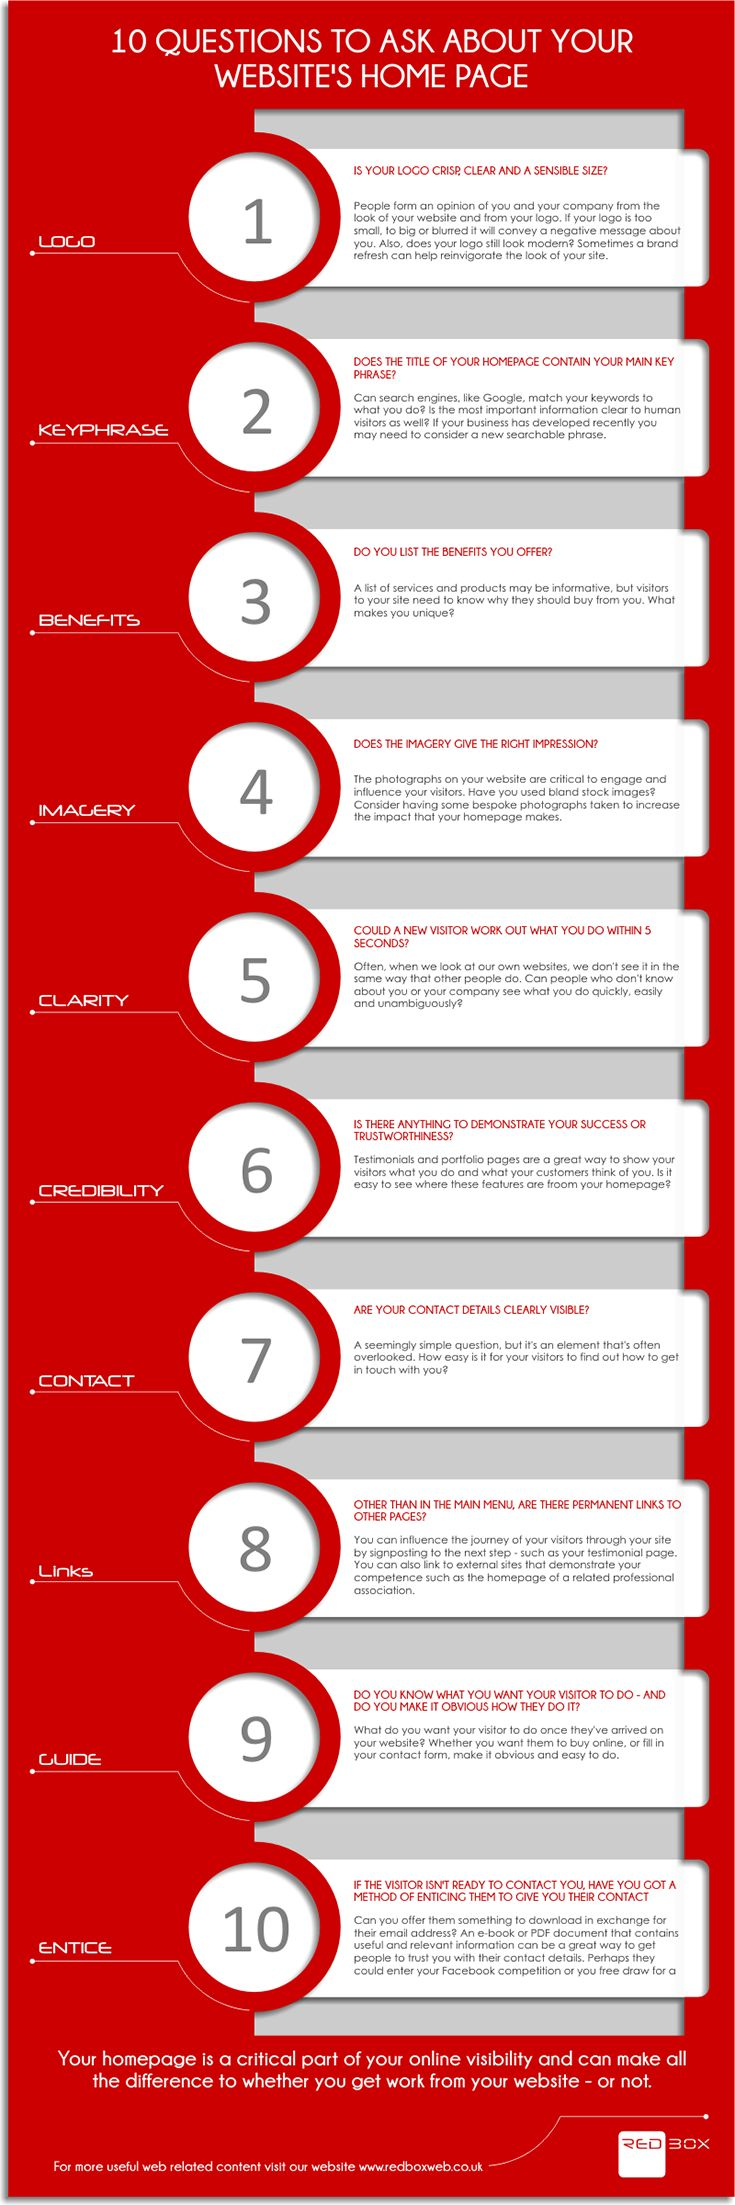 10 questions to ask about your Website's Home page. Web design help and tips from Red Box Web Design based in Stafford in the UK.